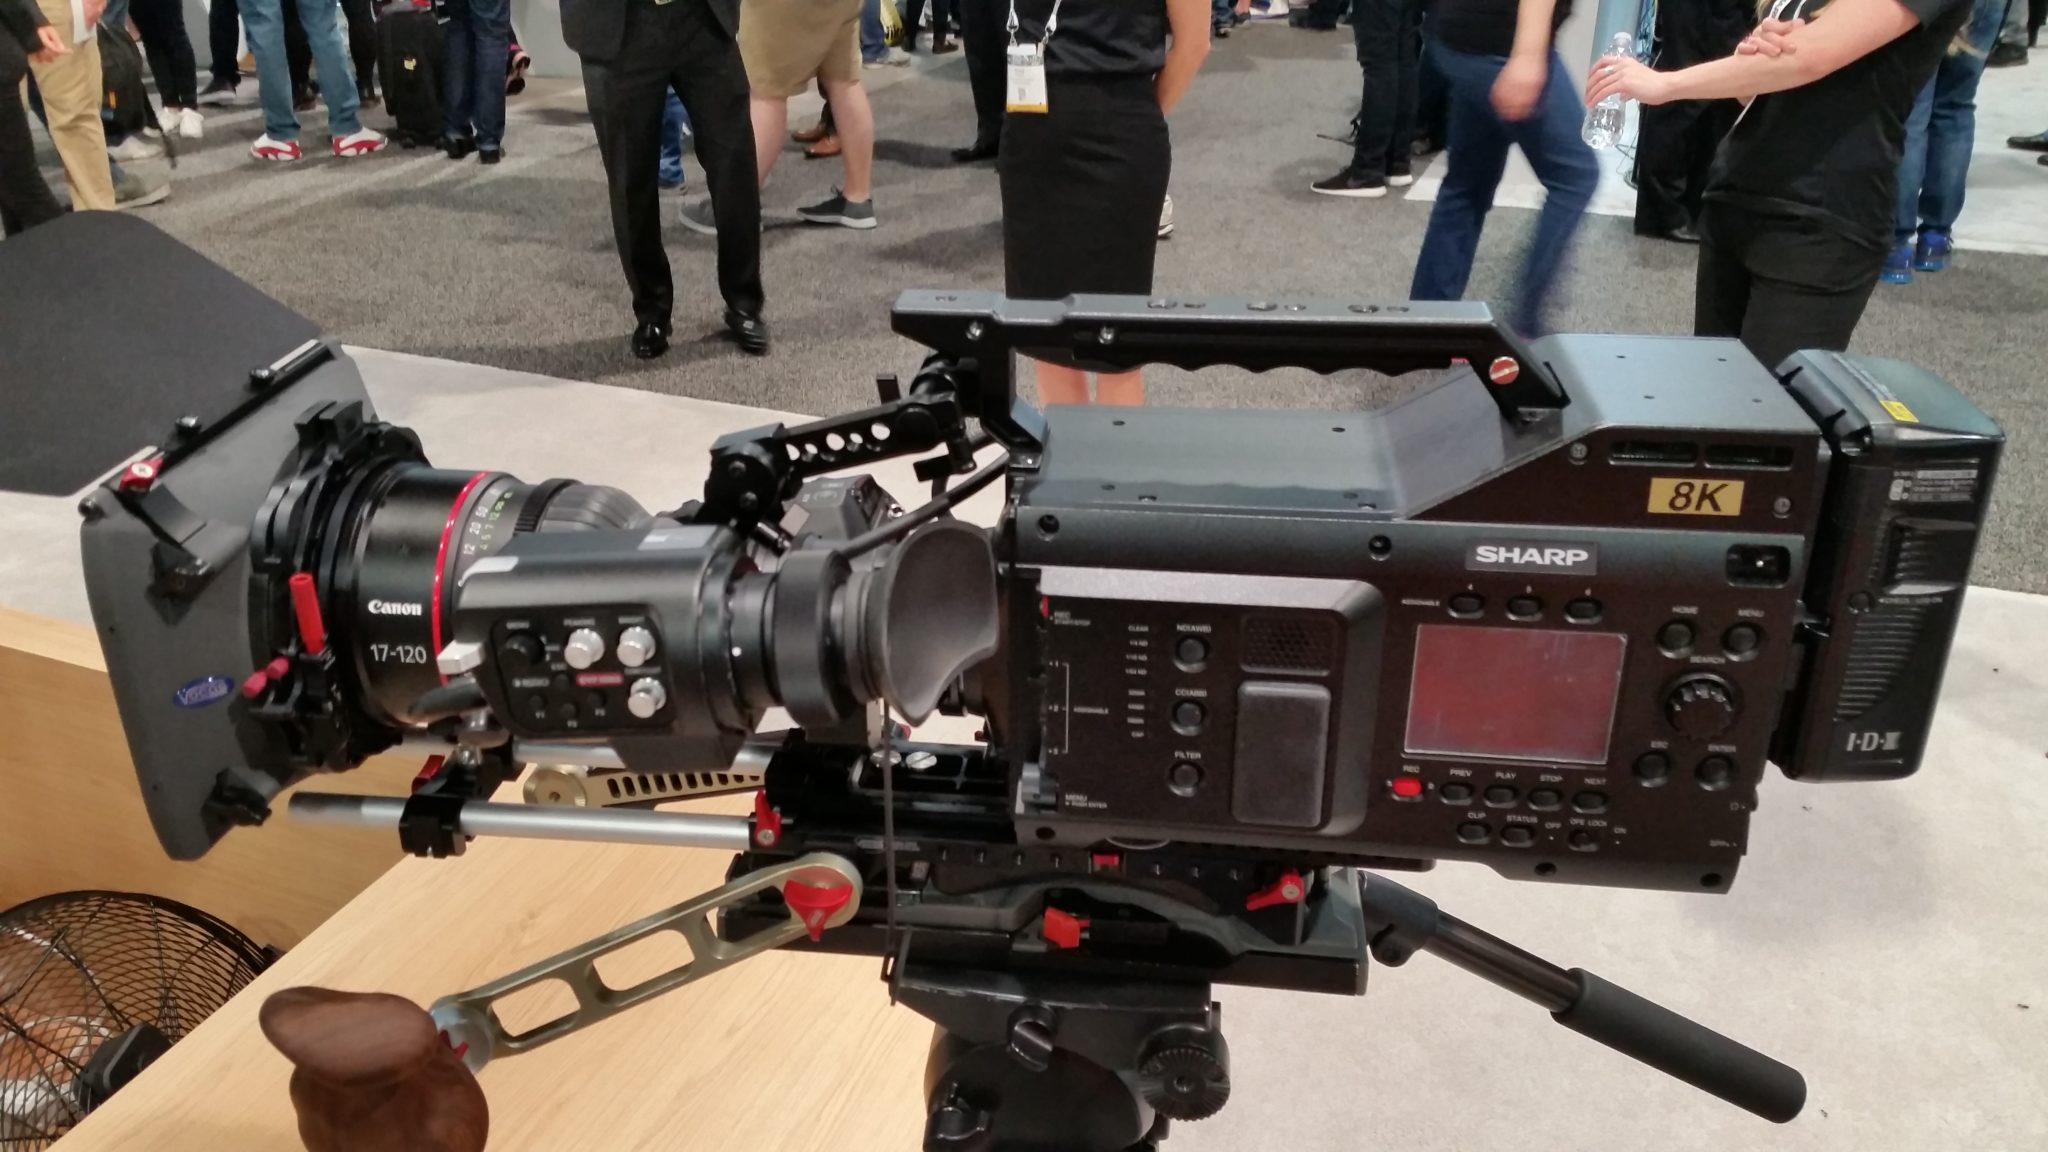 Sharp Electronics 8K-B60A Production Camcorder